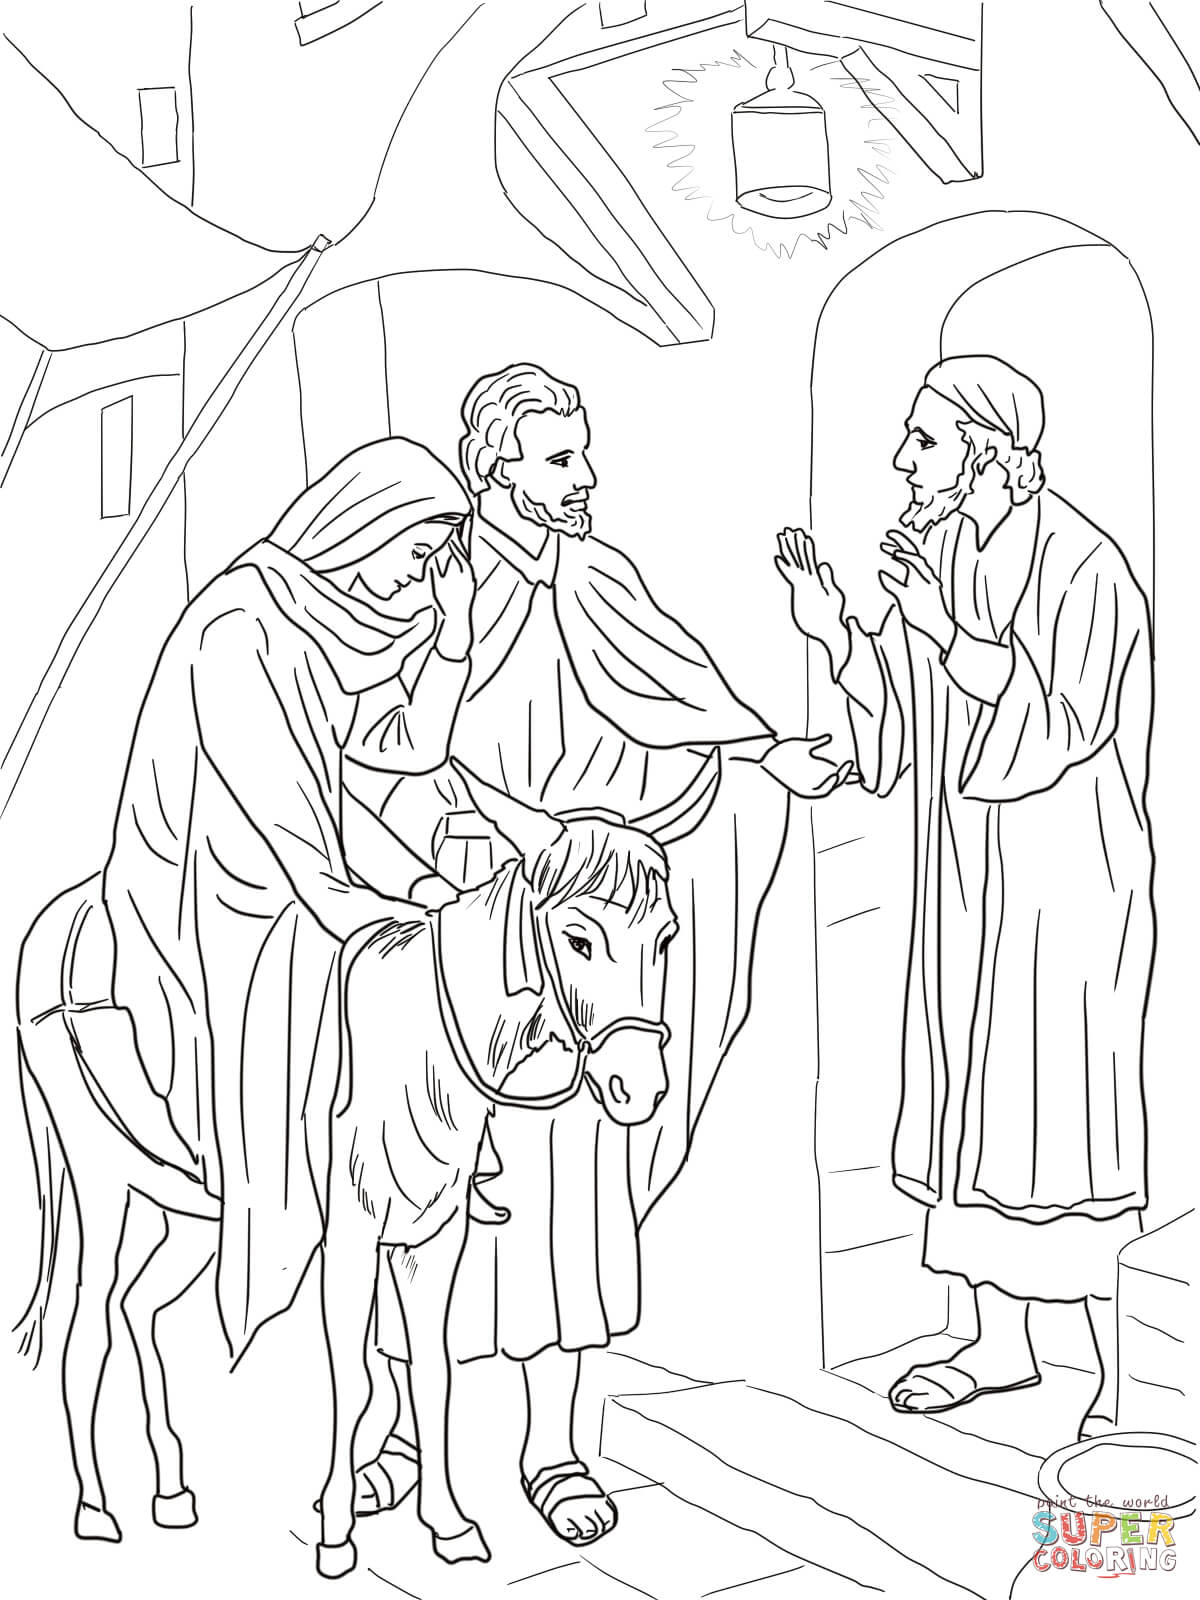 elizabethan coloring pages - the visitation coloring page coloring home